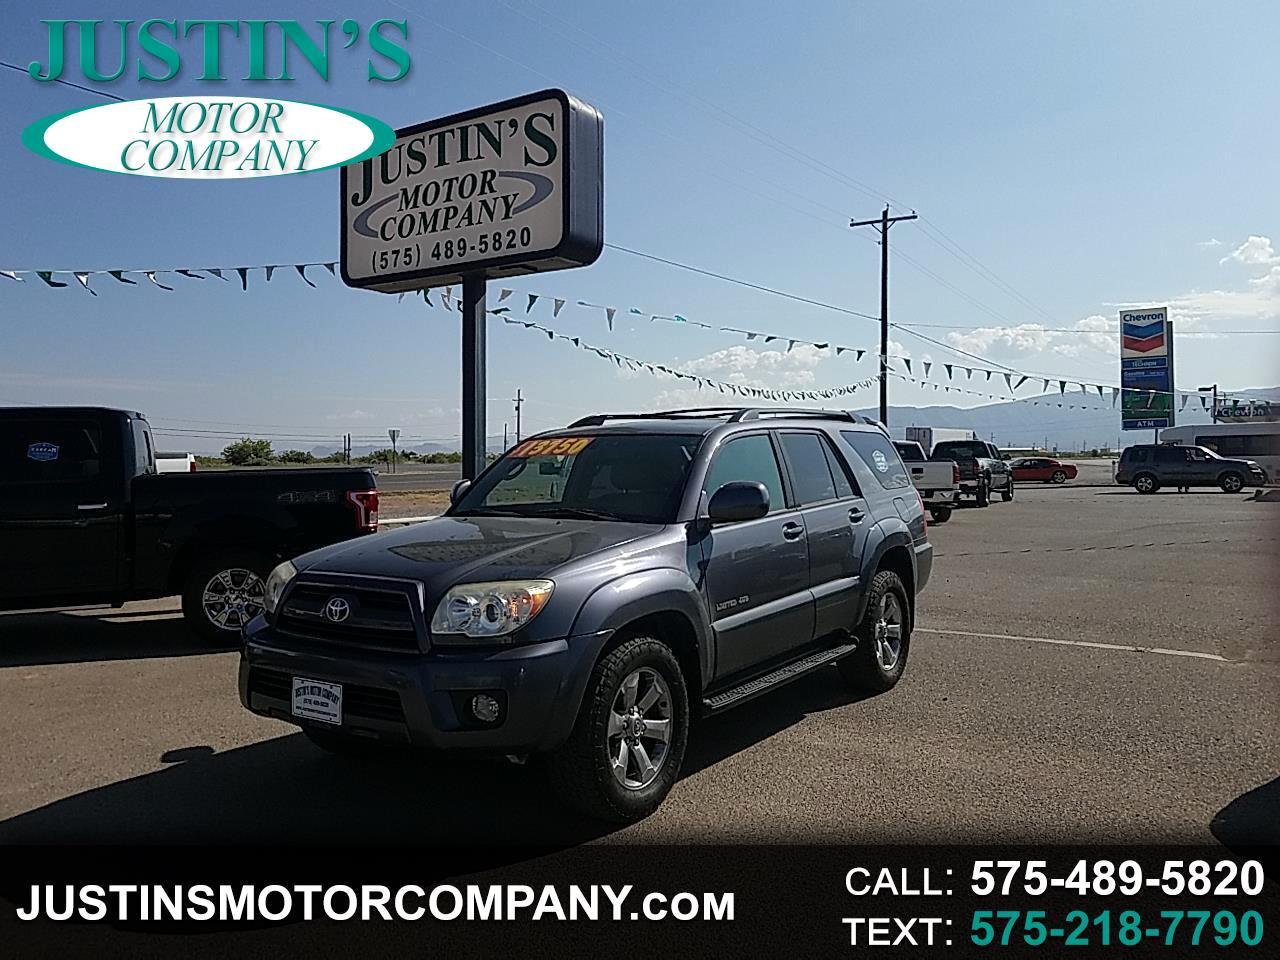 2007 Toyota 4Runner 4WD 4dr V6 Limited (Natl)